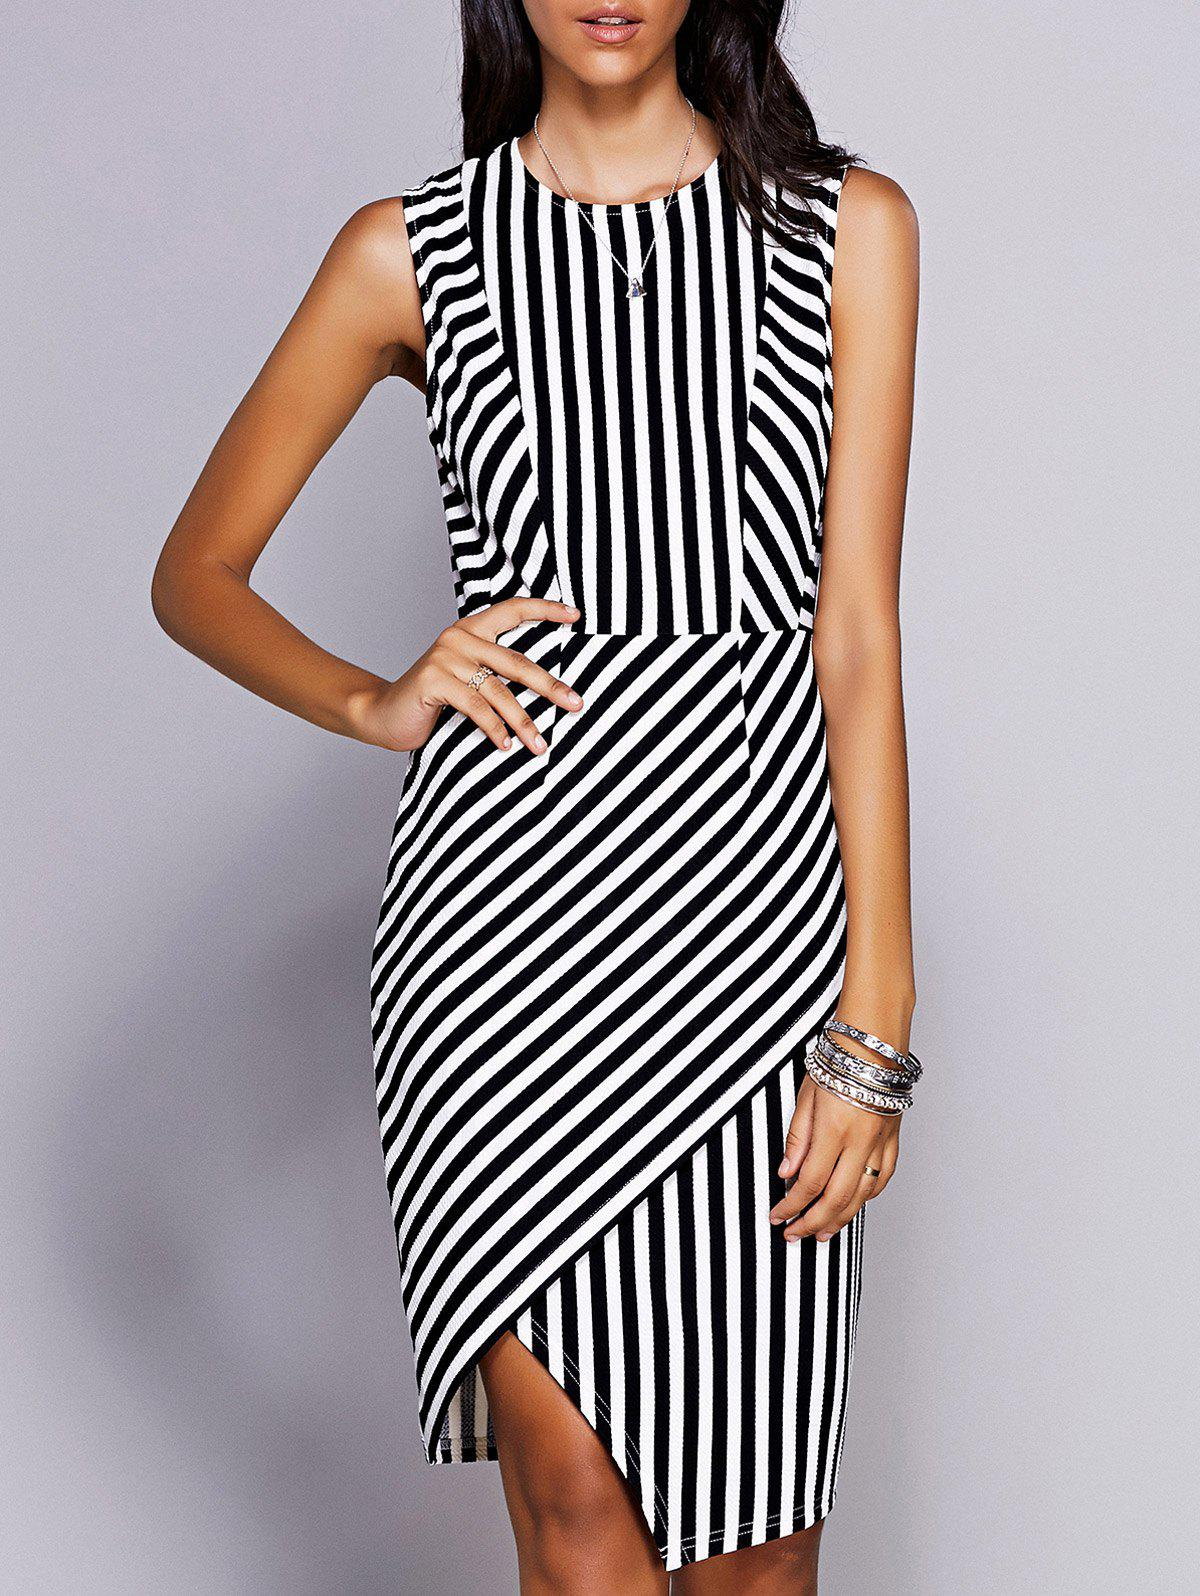 Stylish Women's Round Neck Sleeveless Striped Asymmetric Dress - BLACK M